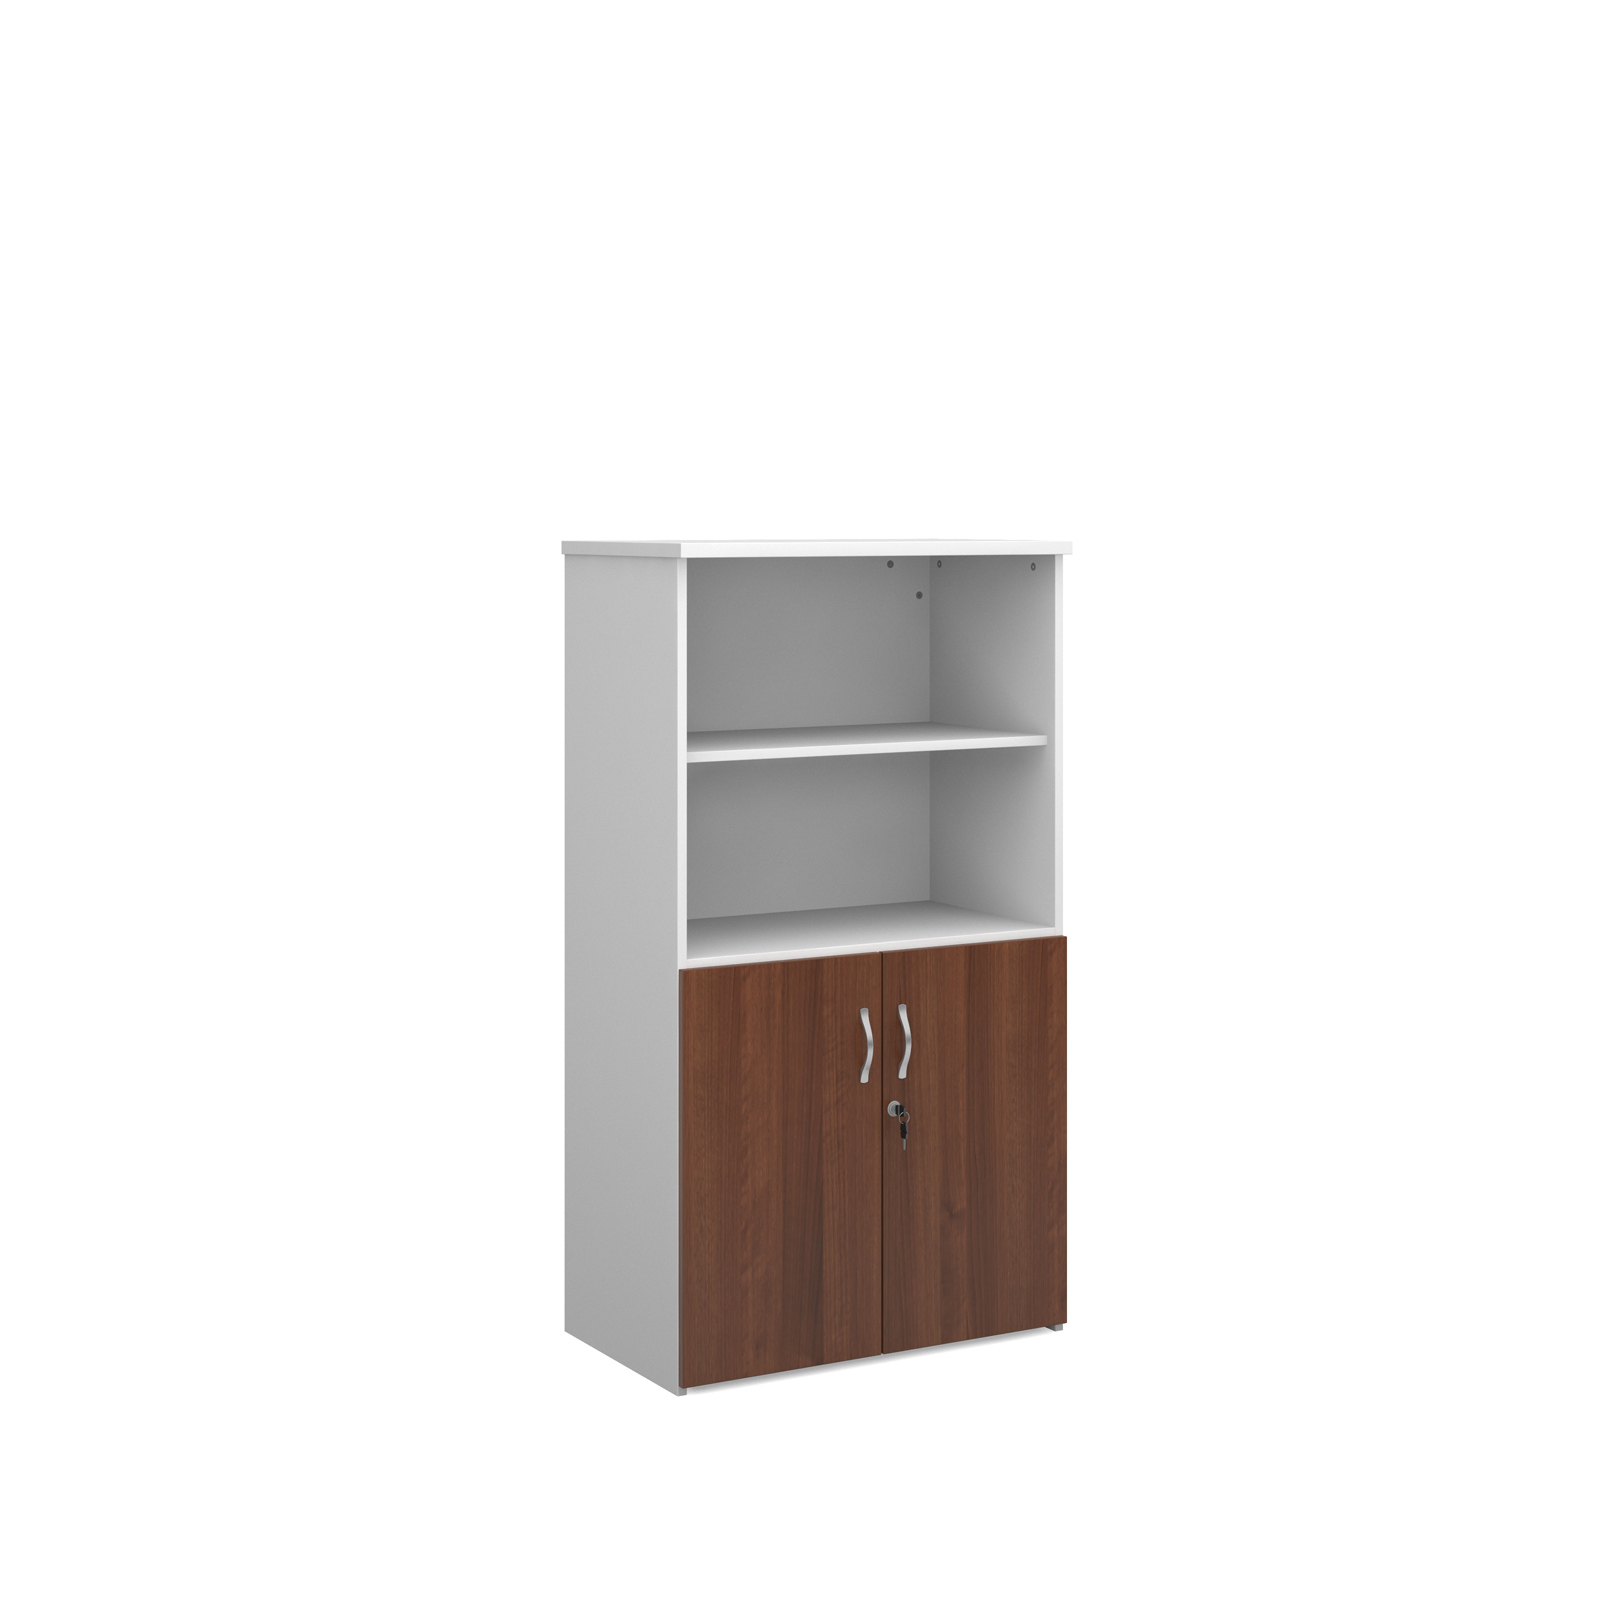 1440mm high combination unit with open top and wood doors in walnut and white